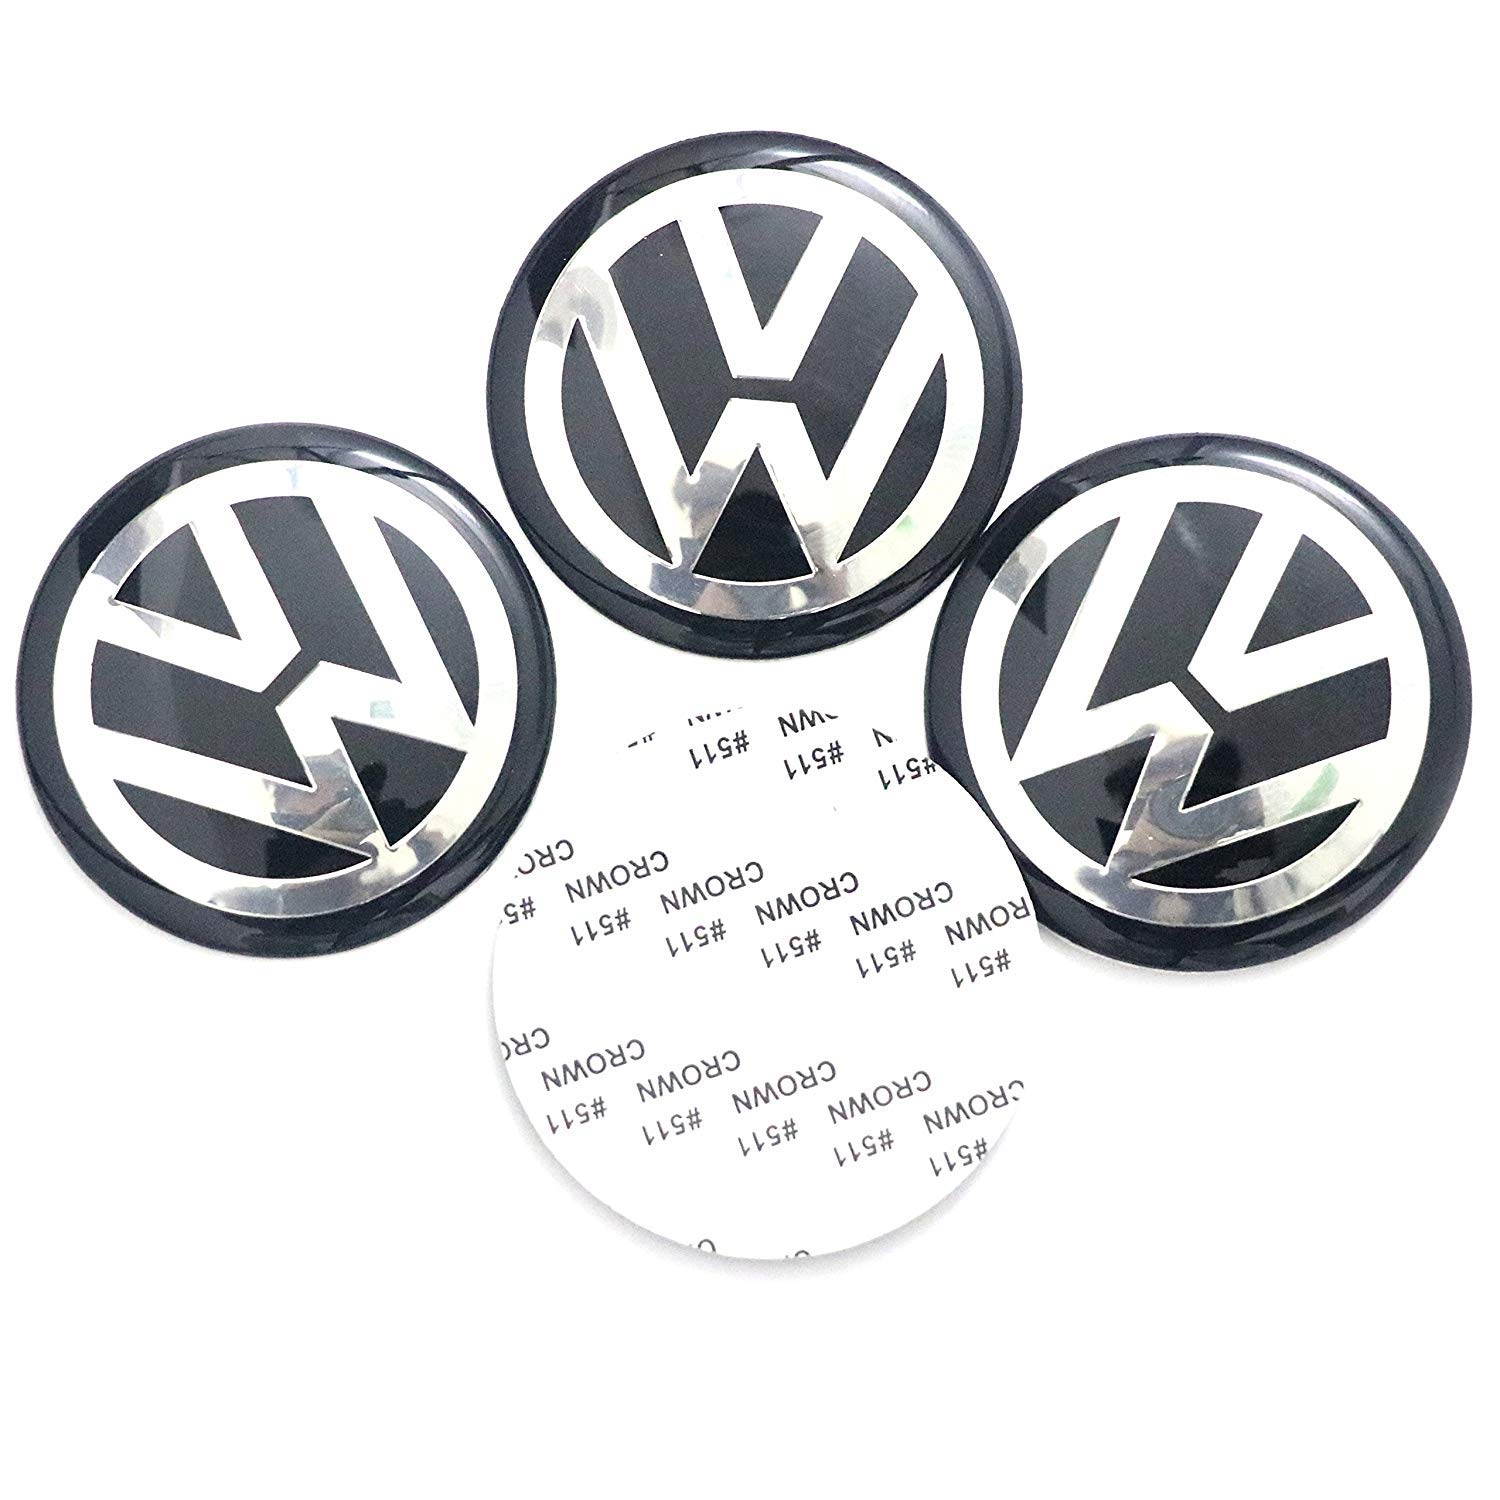 4 x 55mm diameter vw wheel center cap sticker emblem self adhesive for flat surfaces cheap price amazon ca home kitchen